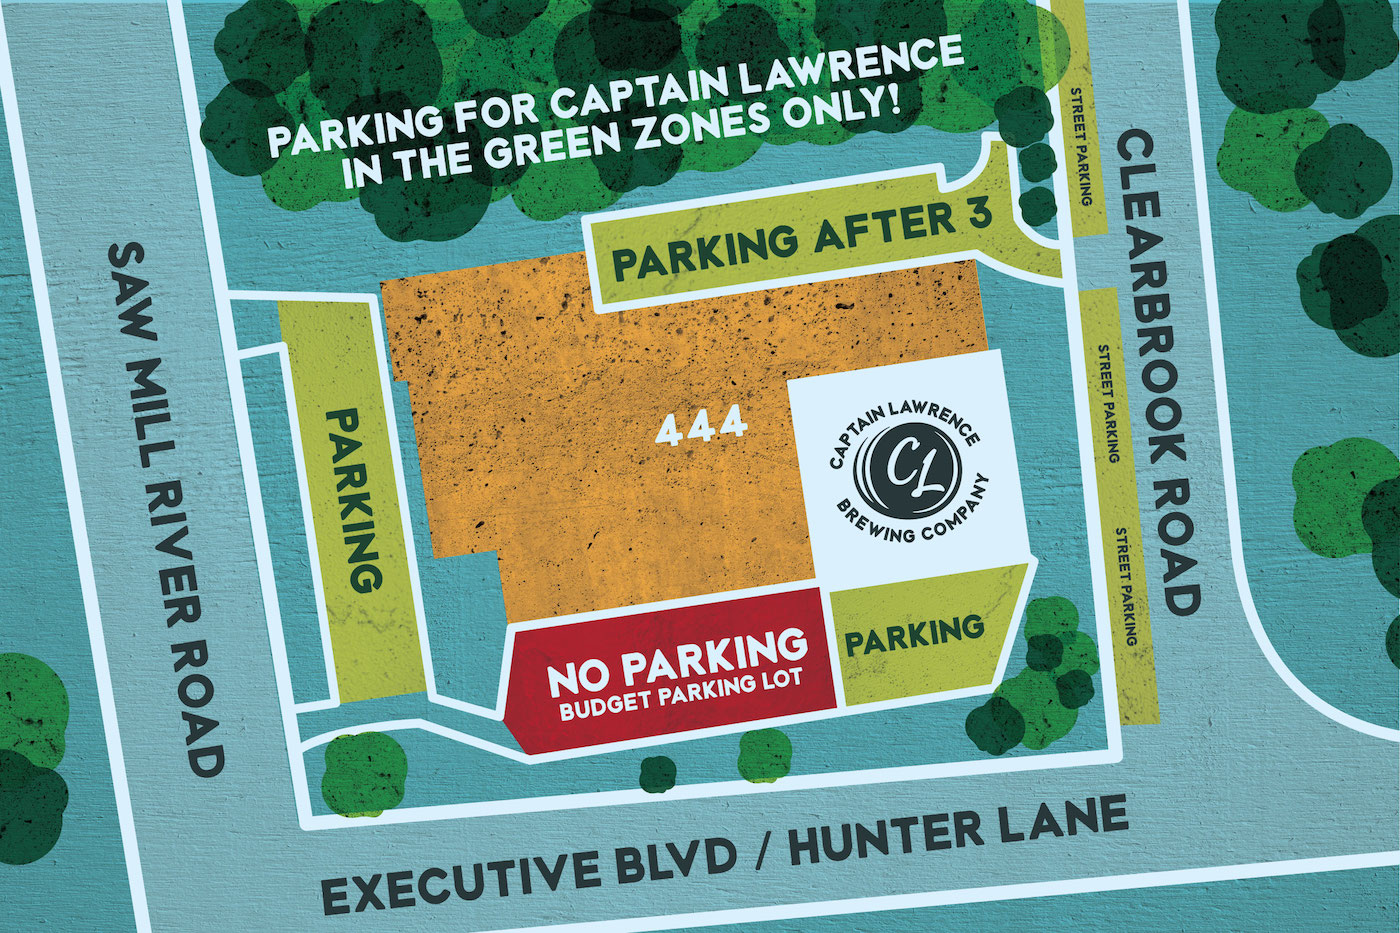 captain lawrence brewing co parking